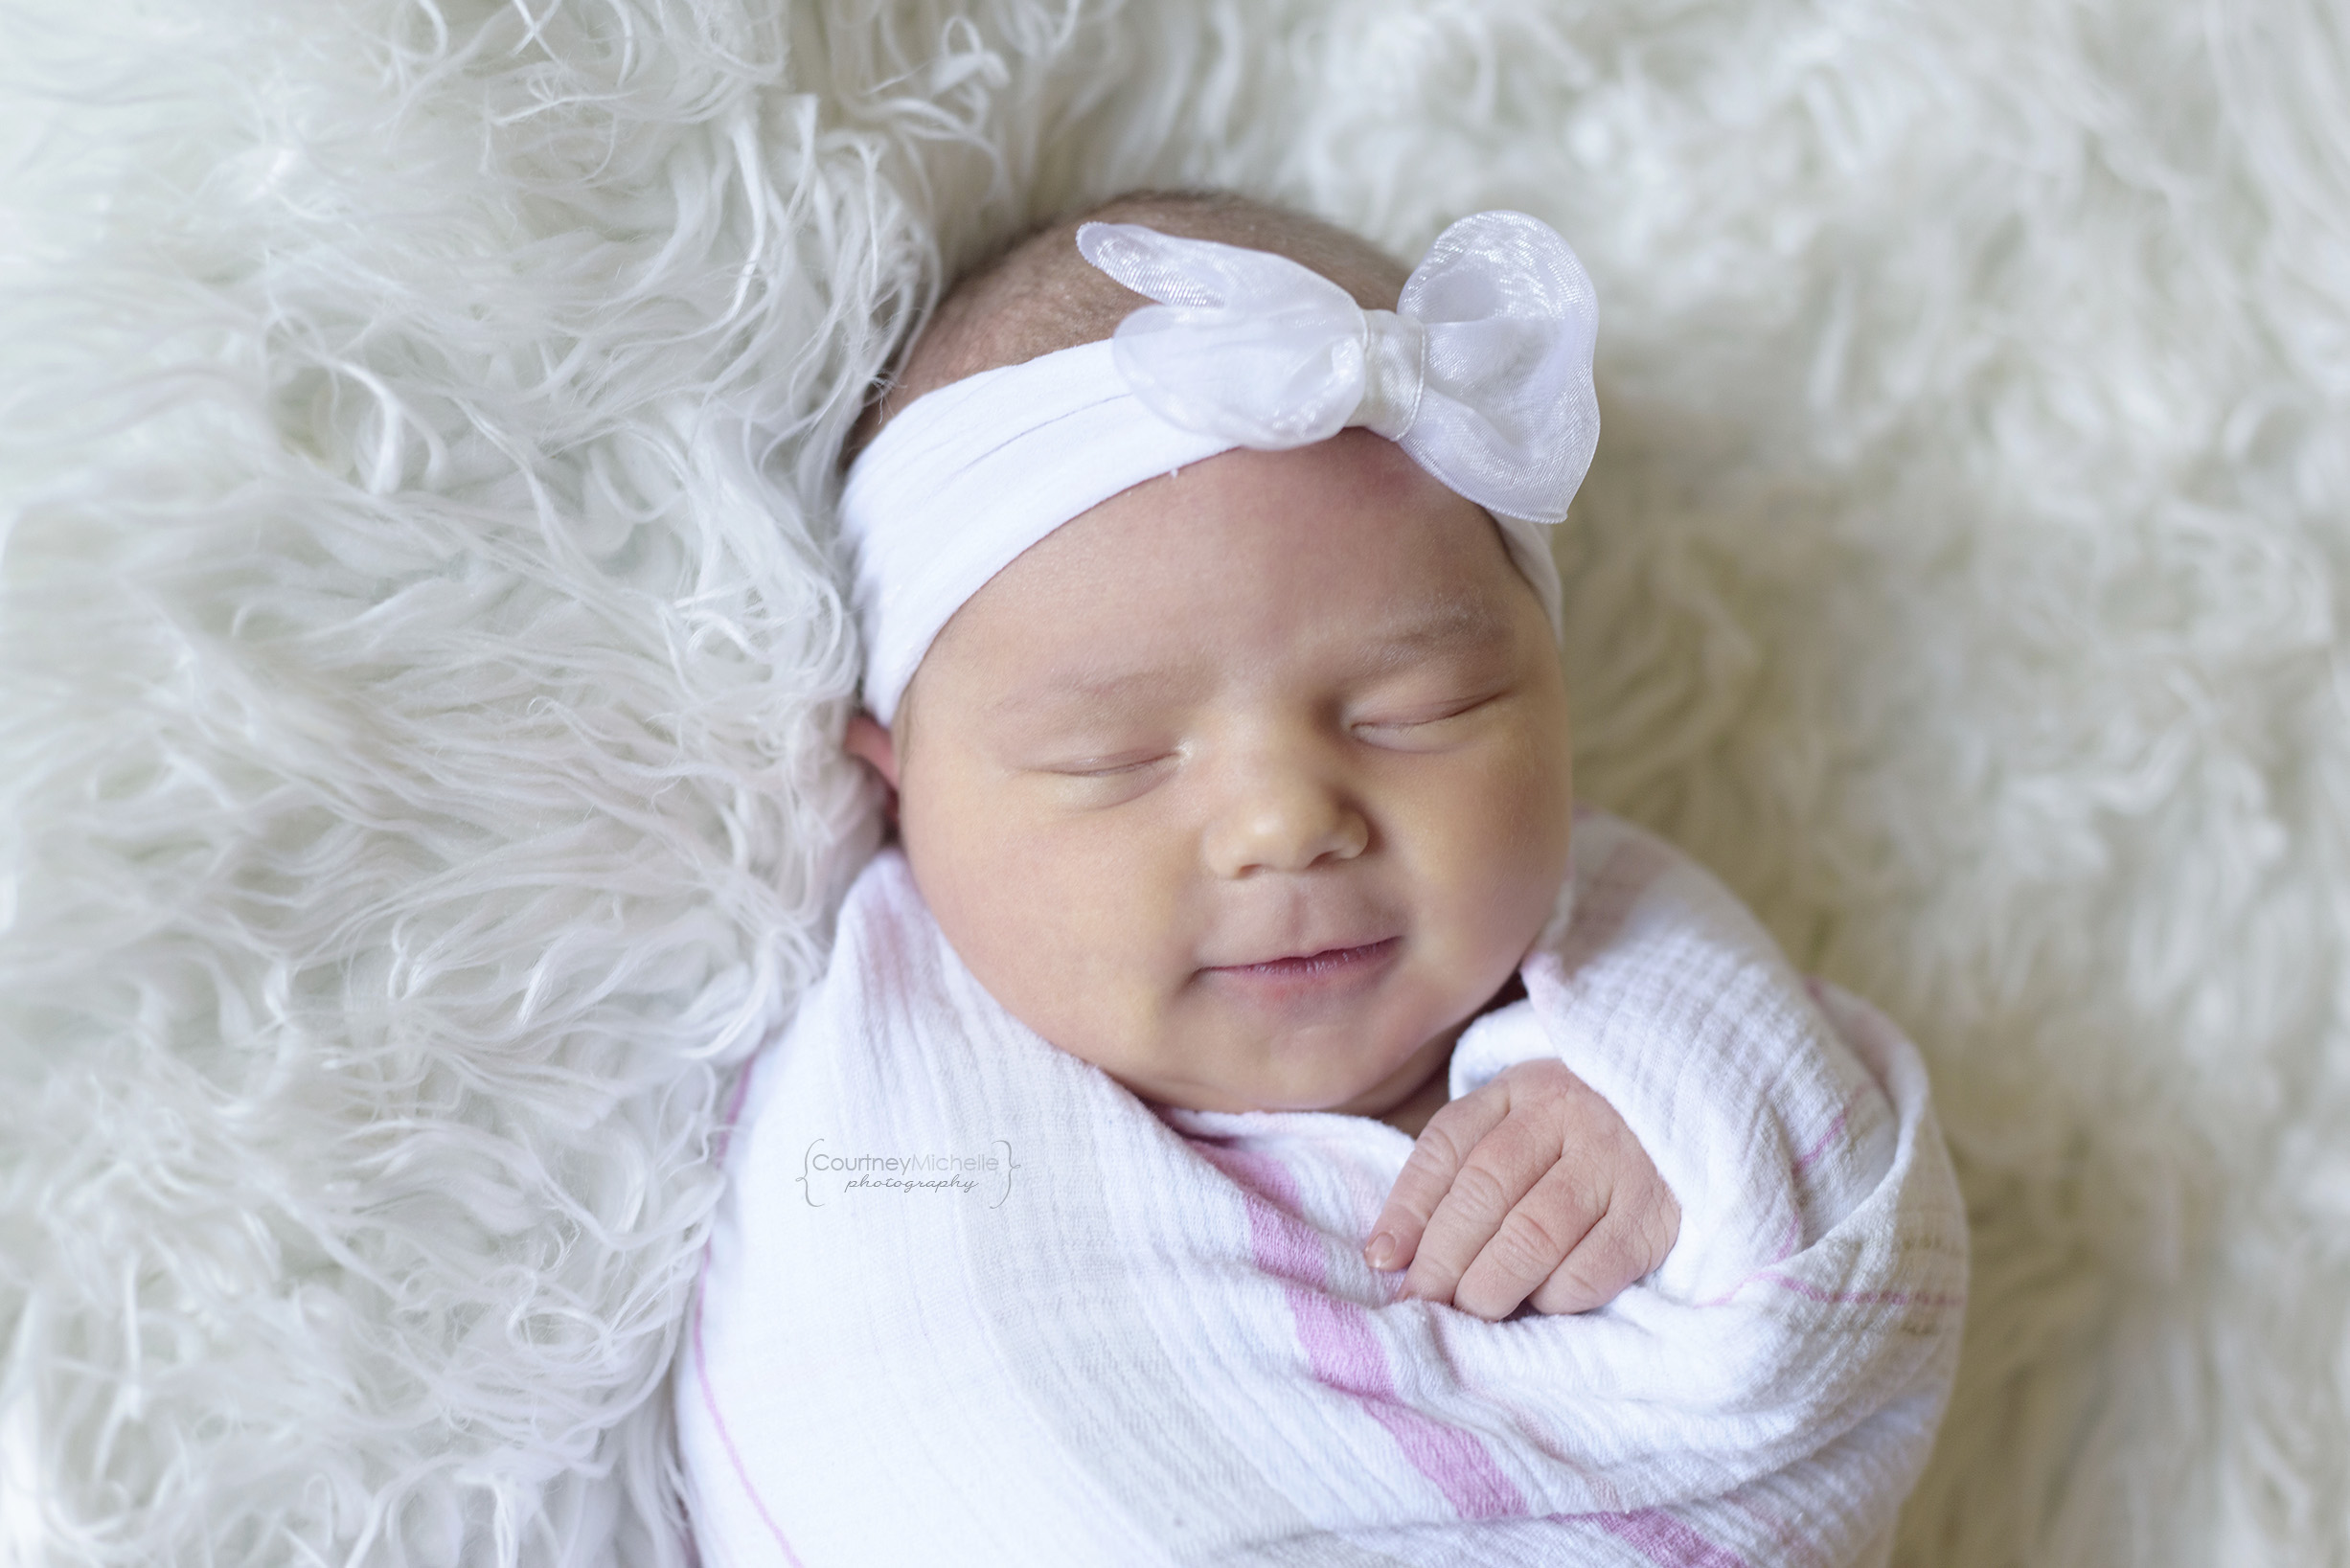 chicago_newborn_photographer_hospital_session_newborn_girl_courtney_laper_courtney_laper©COPYRIGHTCMP-4864edit.jpg